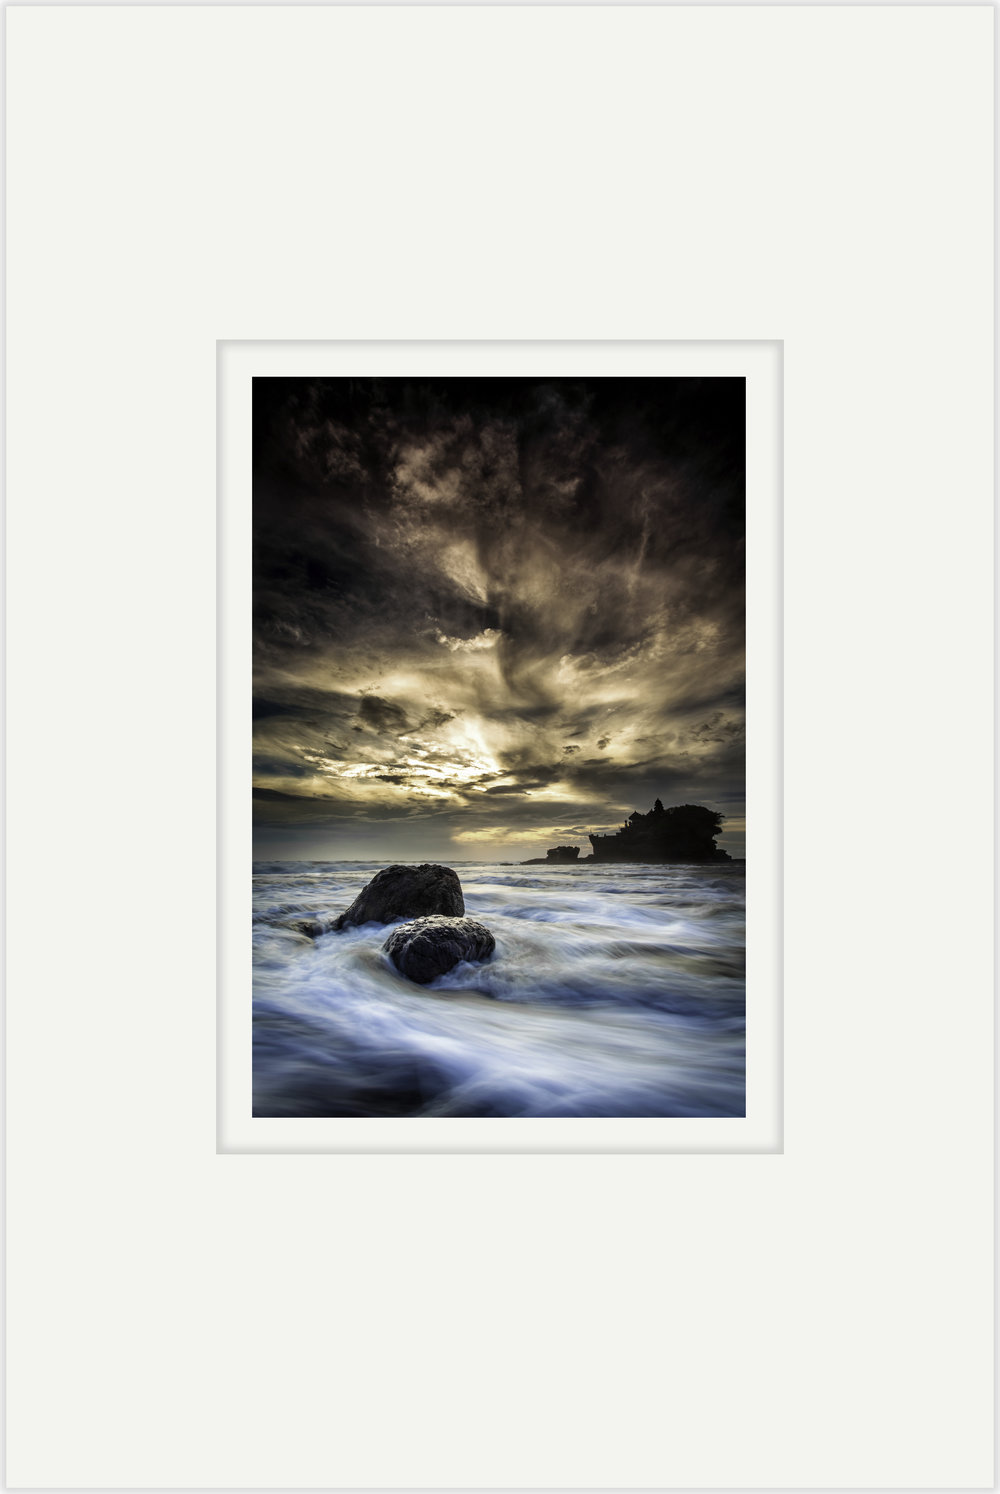 Rough Tide And Sky 10cm x 15cm Photo Paper Limited Edition of 99 IDR 249,000